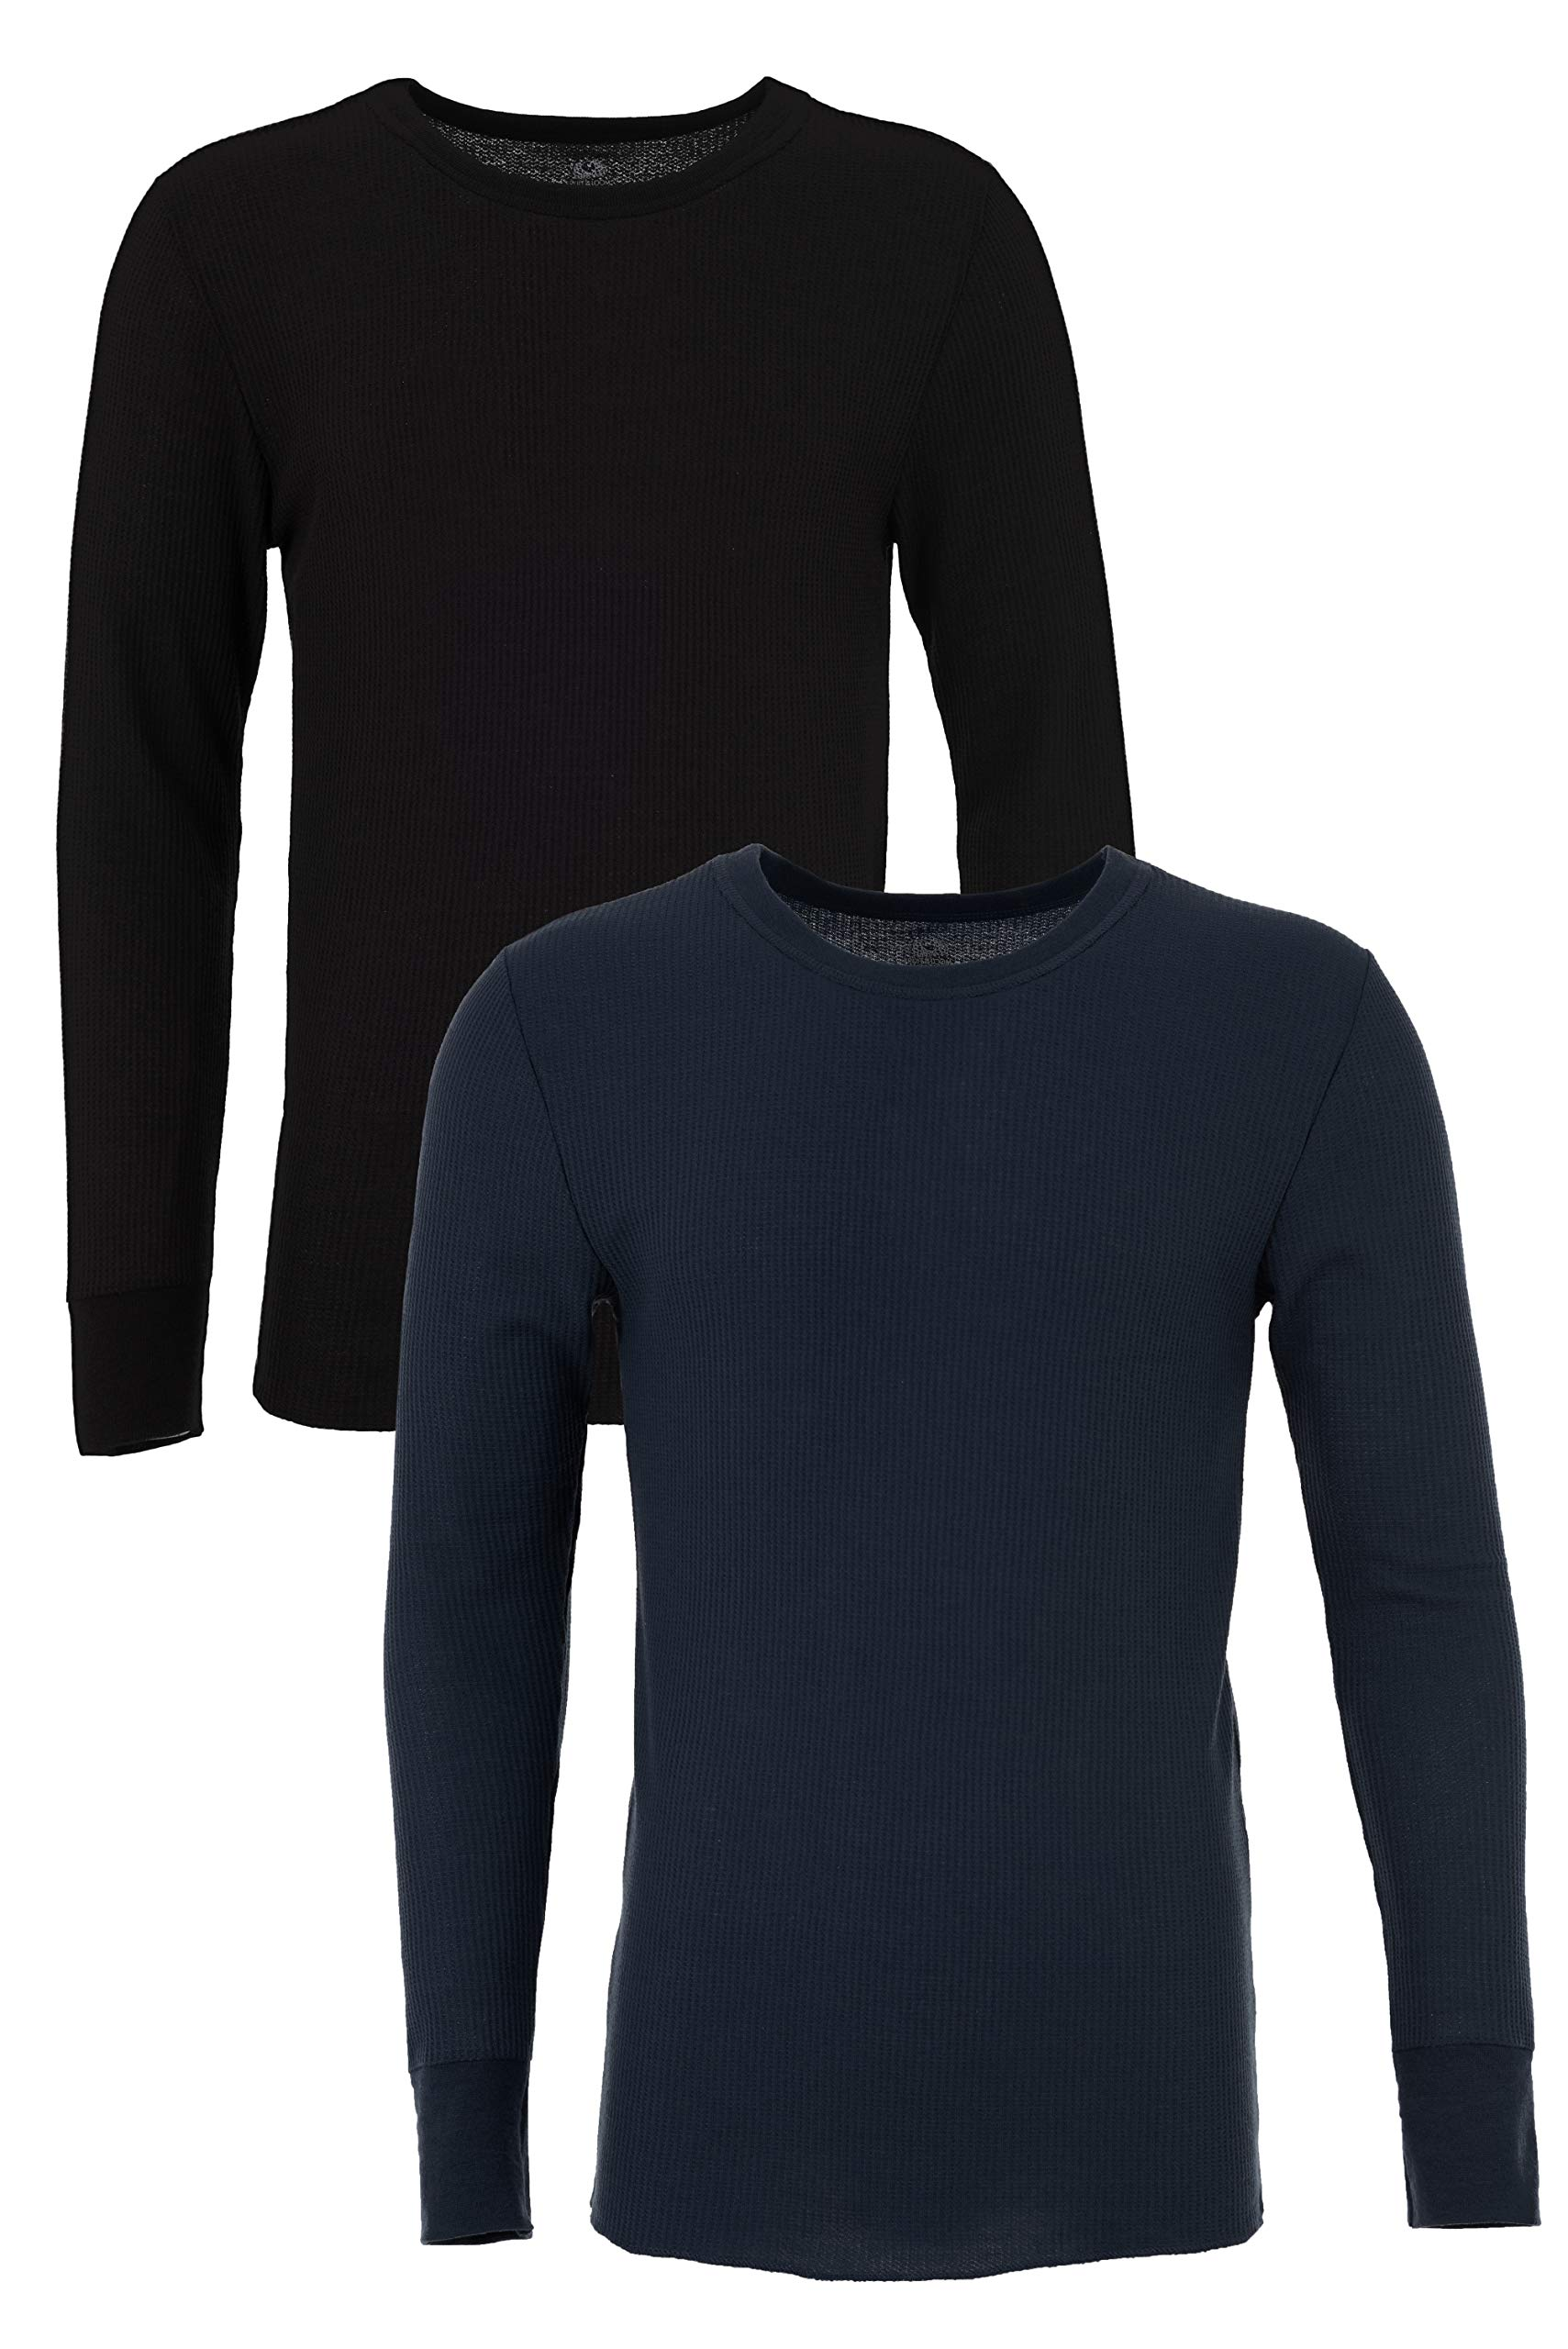 Fruit of the Loom Men's Classic Midweight Waffle Thermal Top (2 Pack), Navy/Black soot, Small by Fruit of the Loom